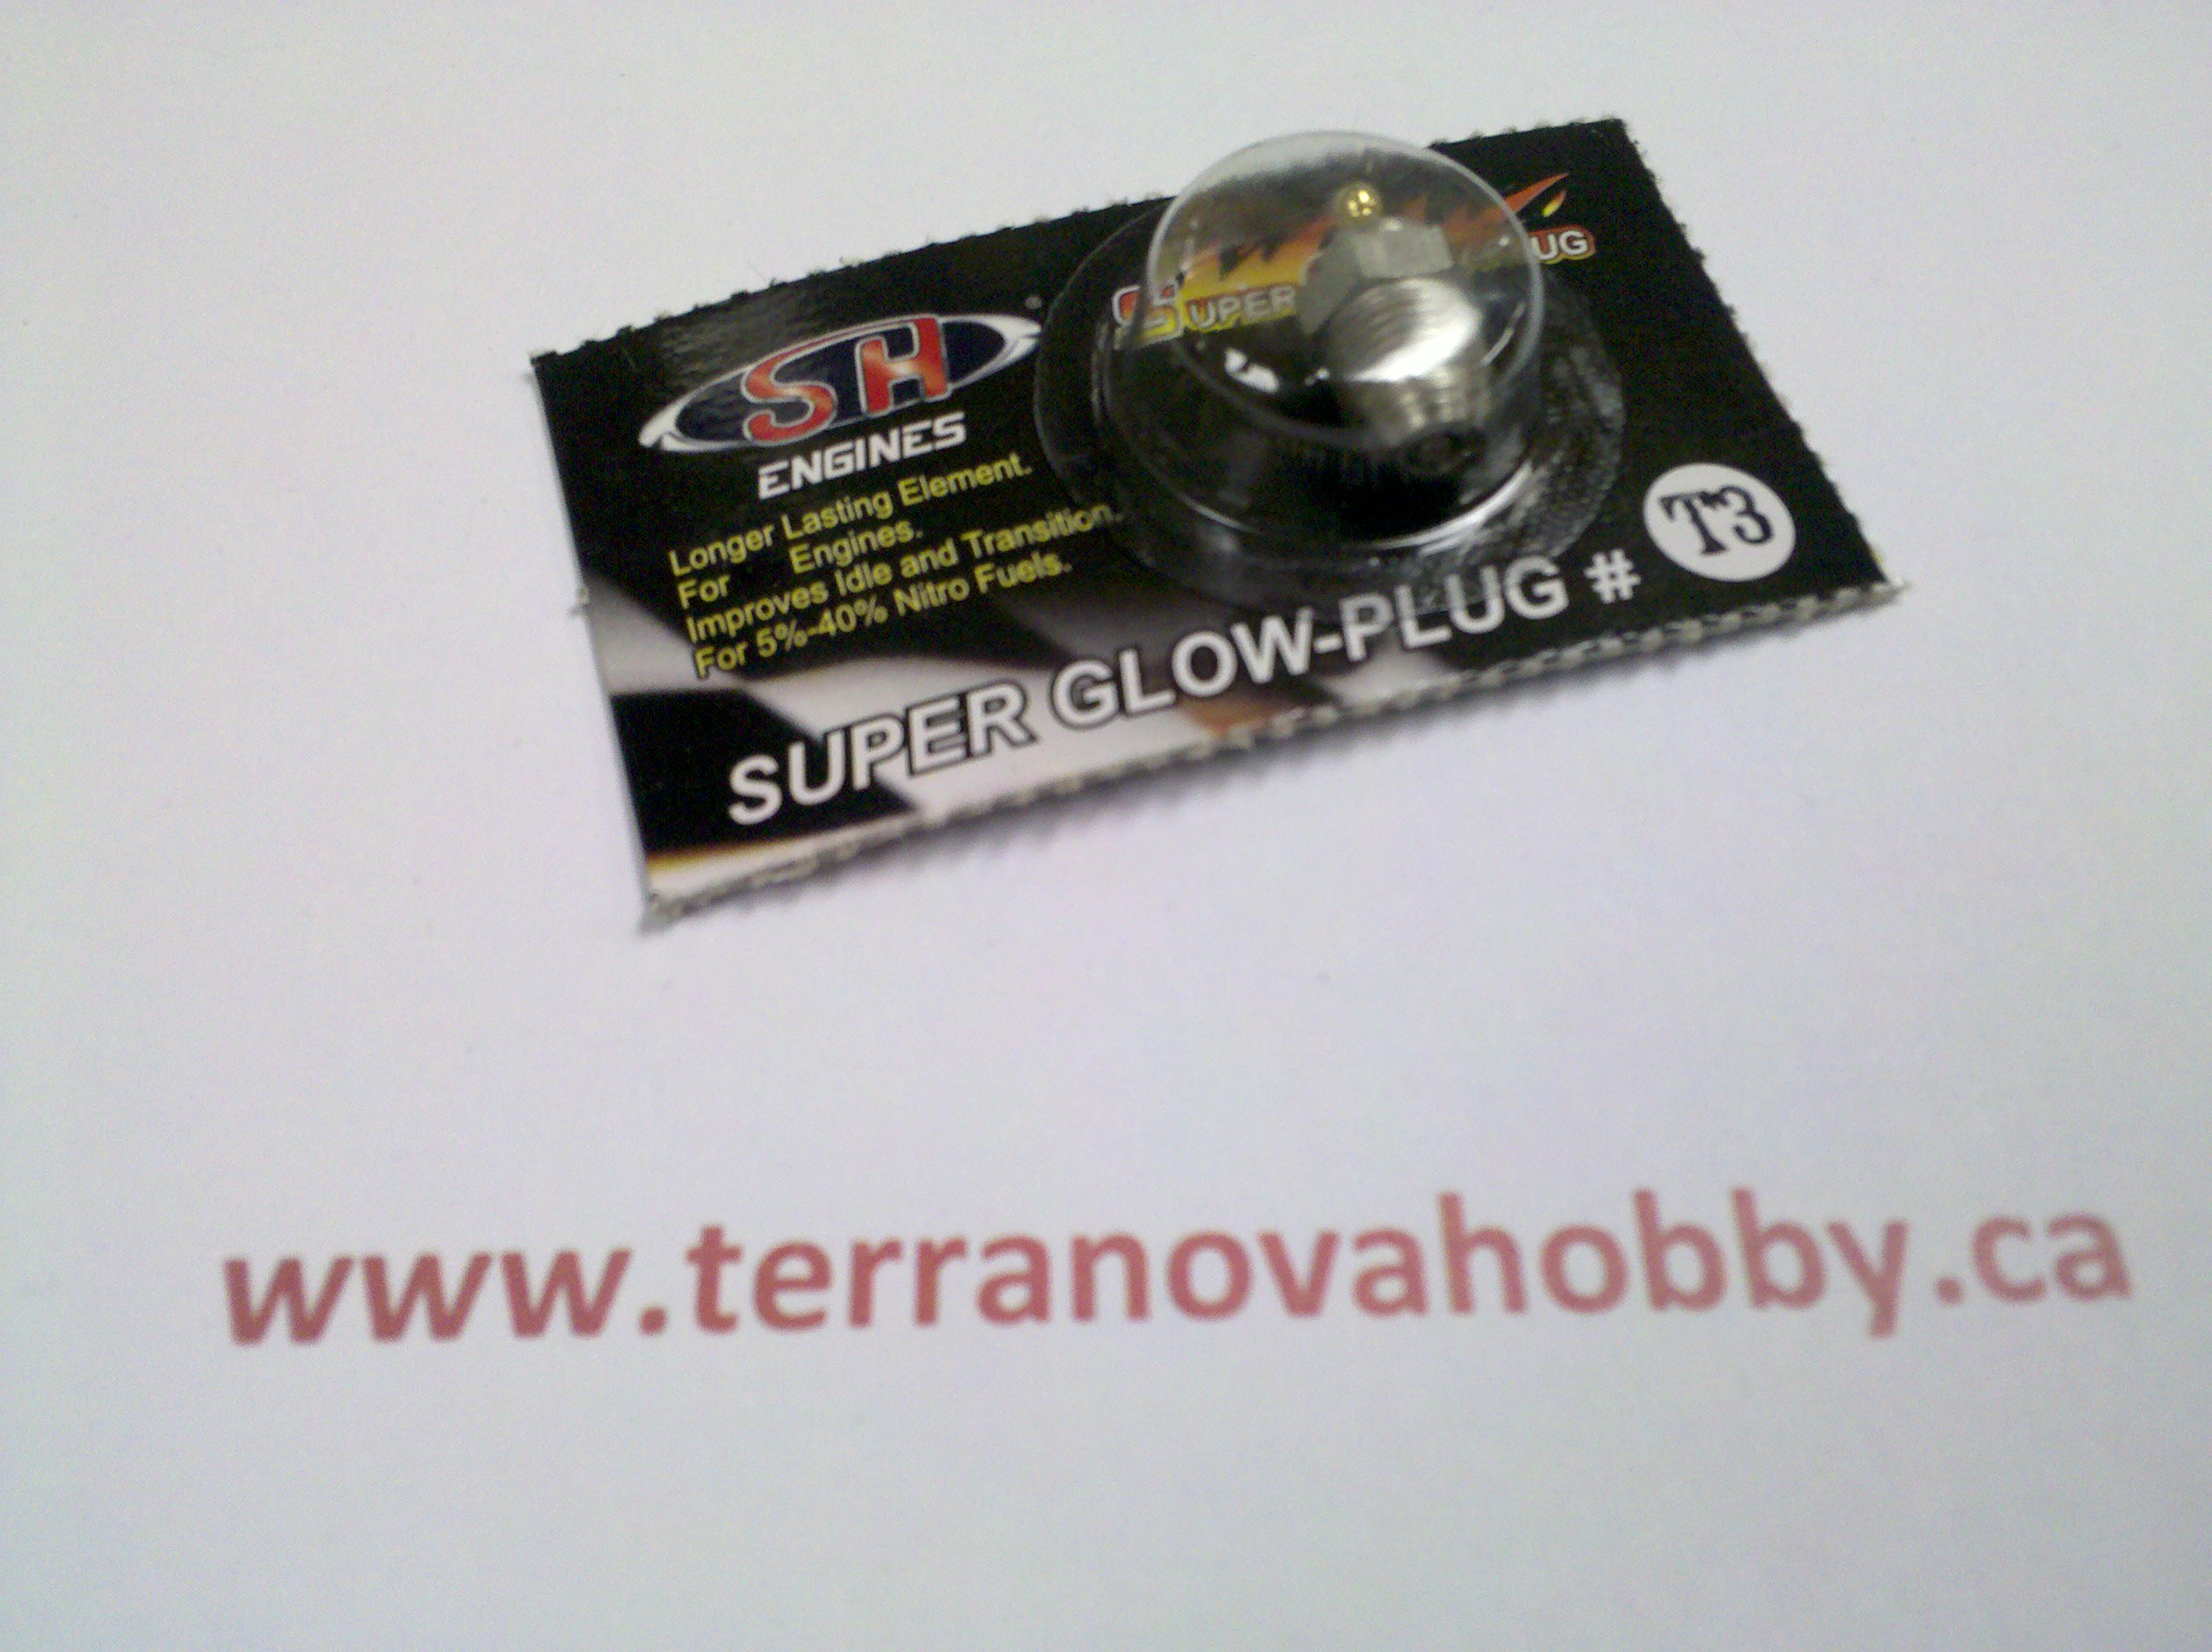 NO.T3 GLOW PLUG/TURBO